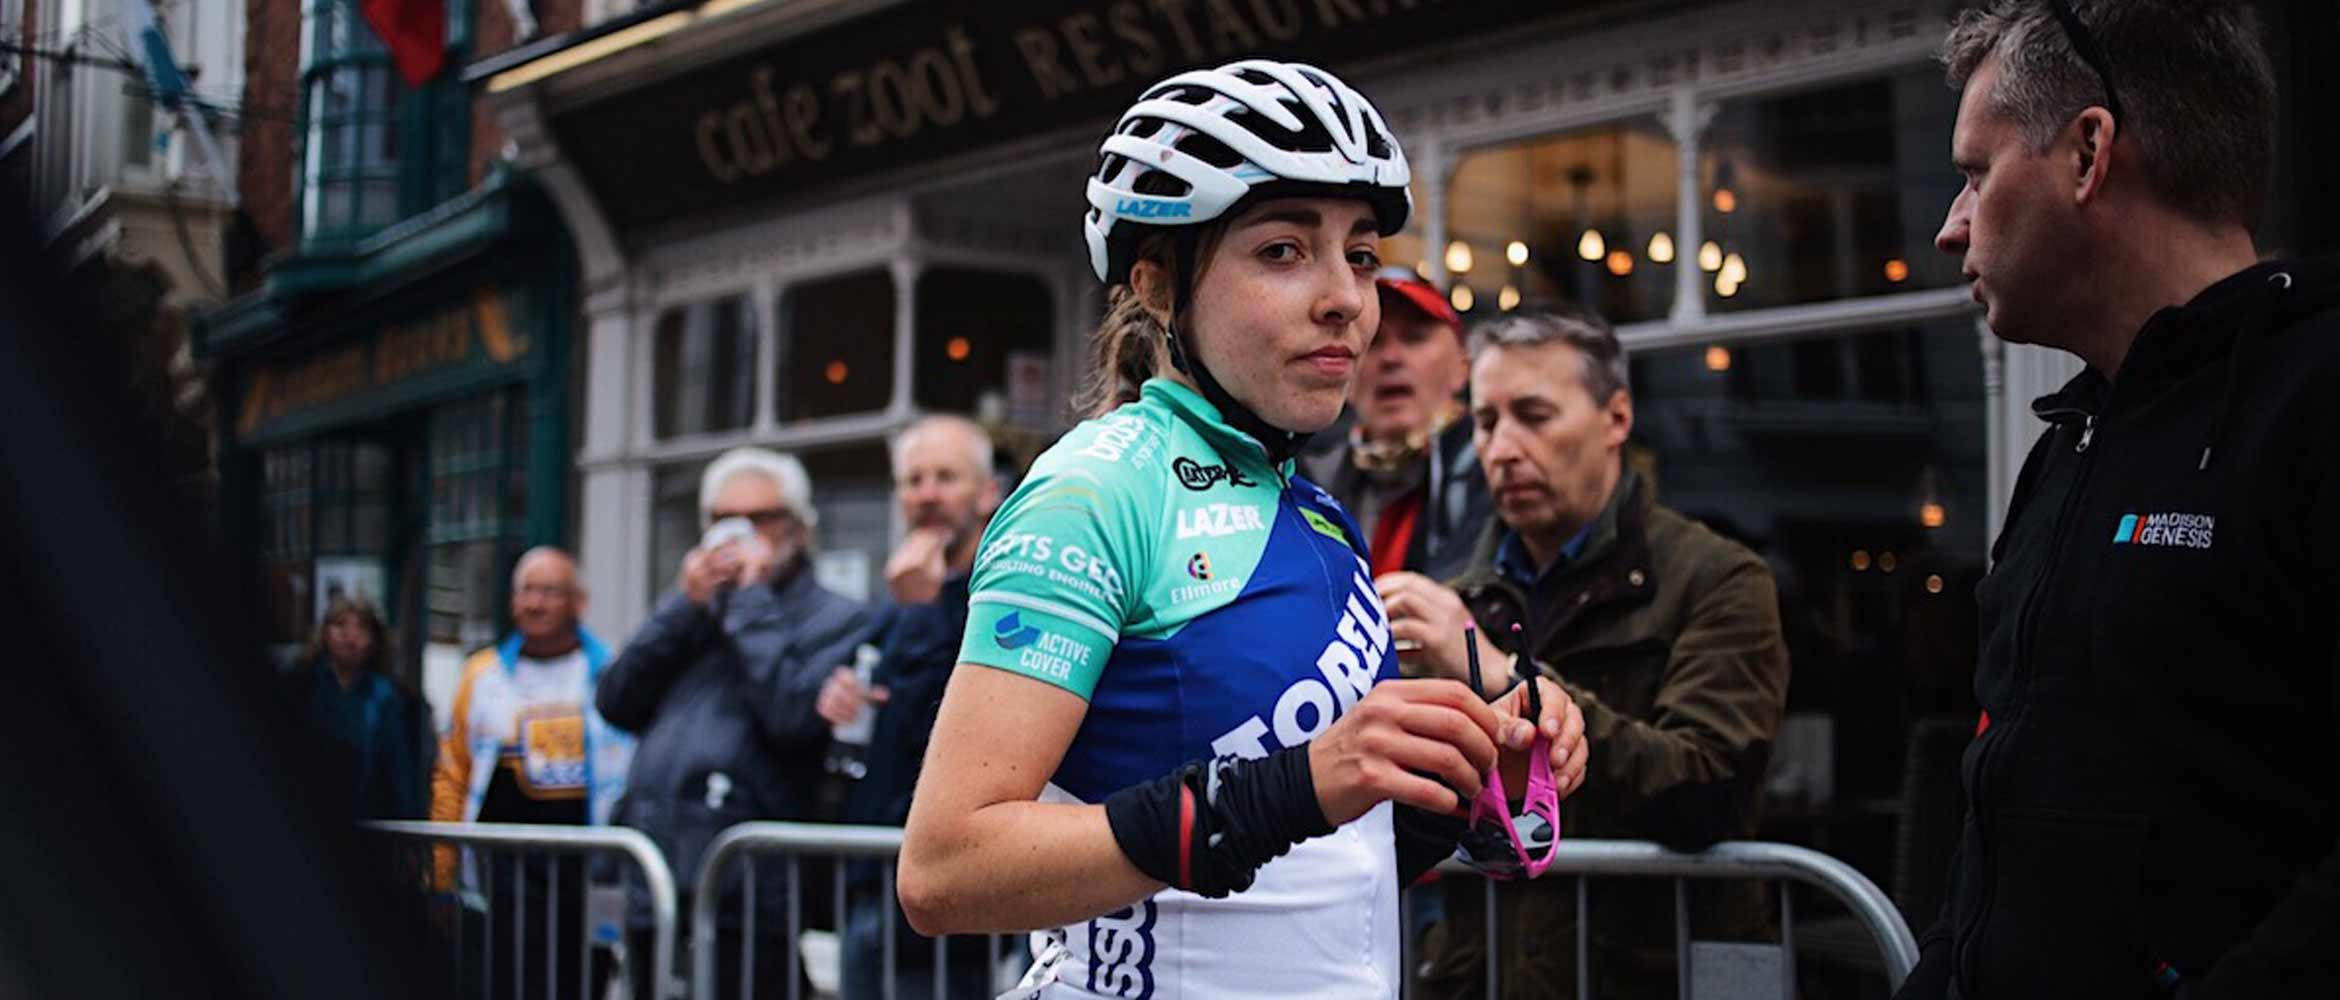 Cyclist Sophie Wright looking at the camera and holding her sunglasses in her hand